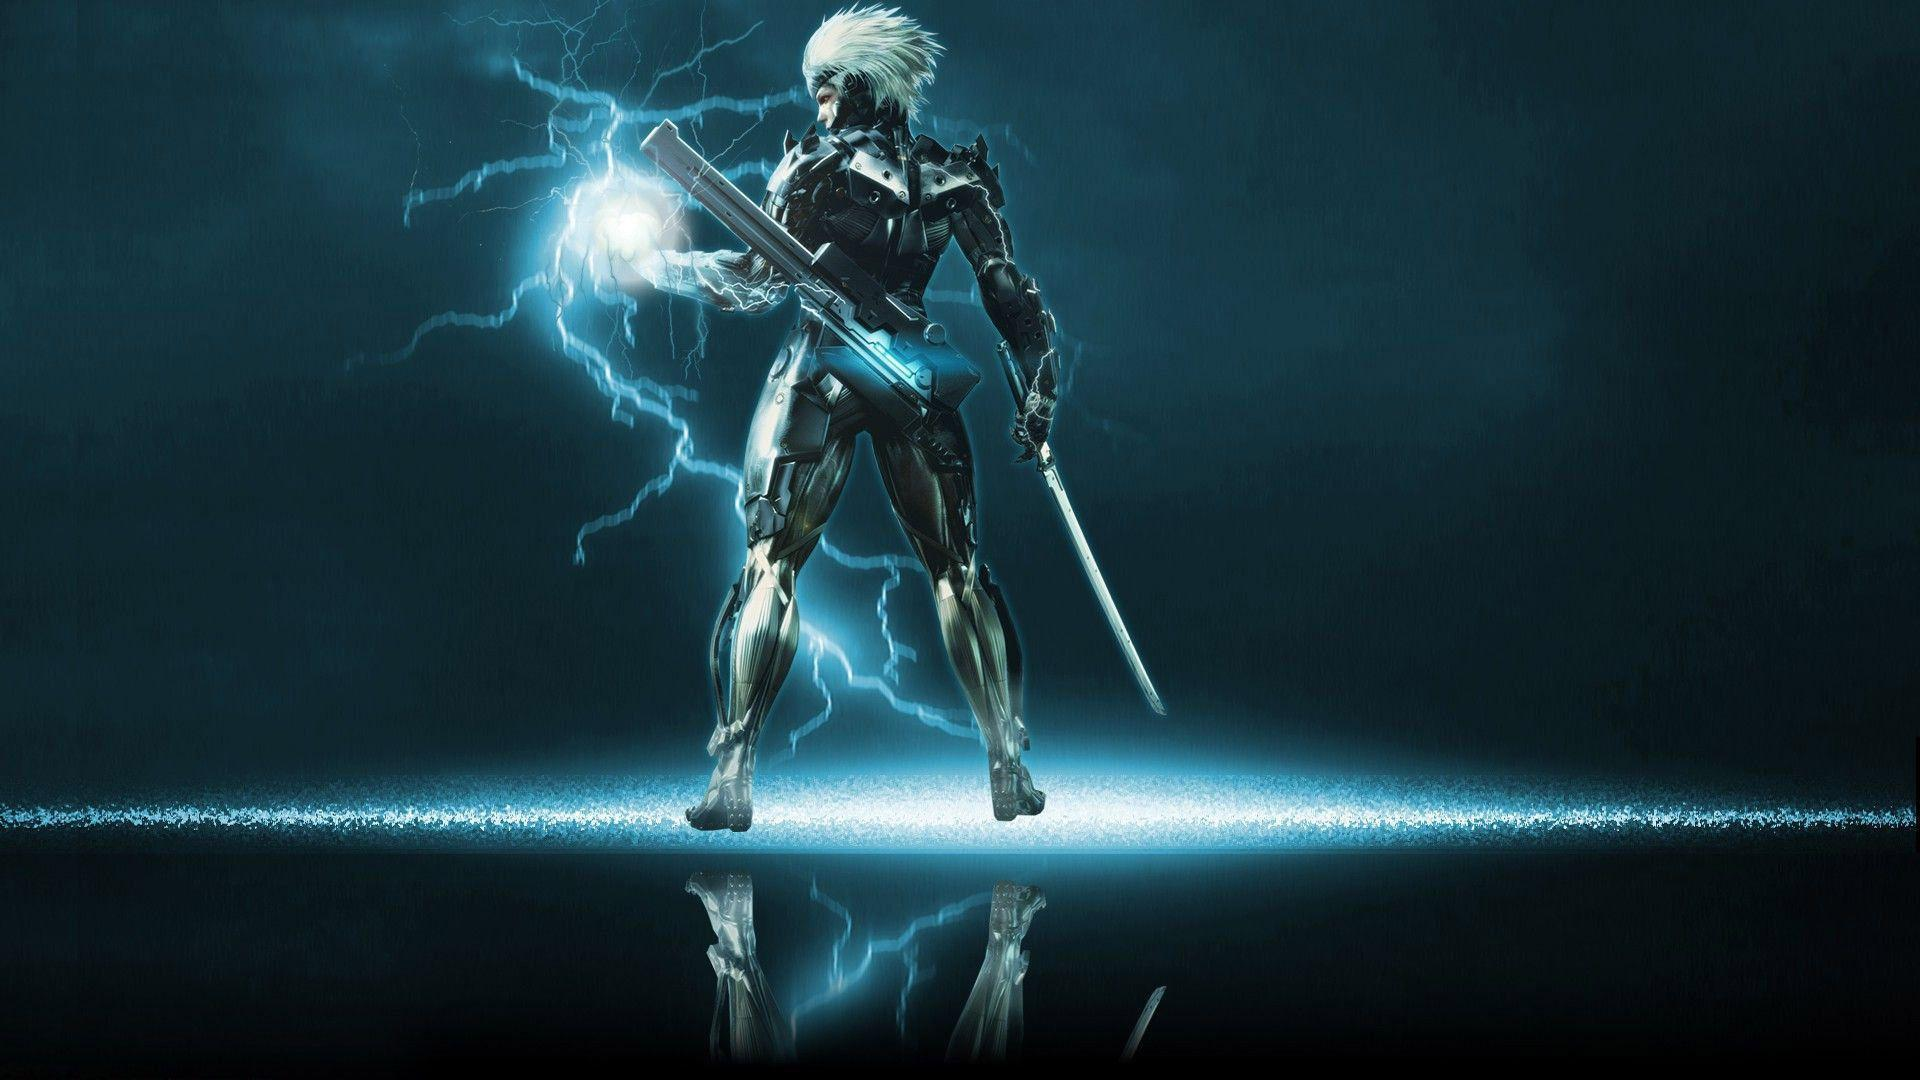 1920x1080px metal gear solid raiden wallpaper wallpapersafari metal gear solid raiden wallpapers 1920x1080 voltagebd